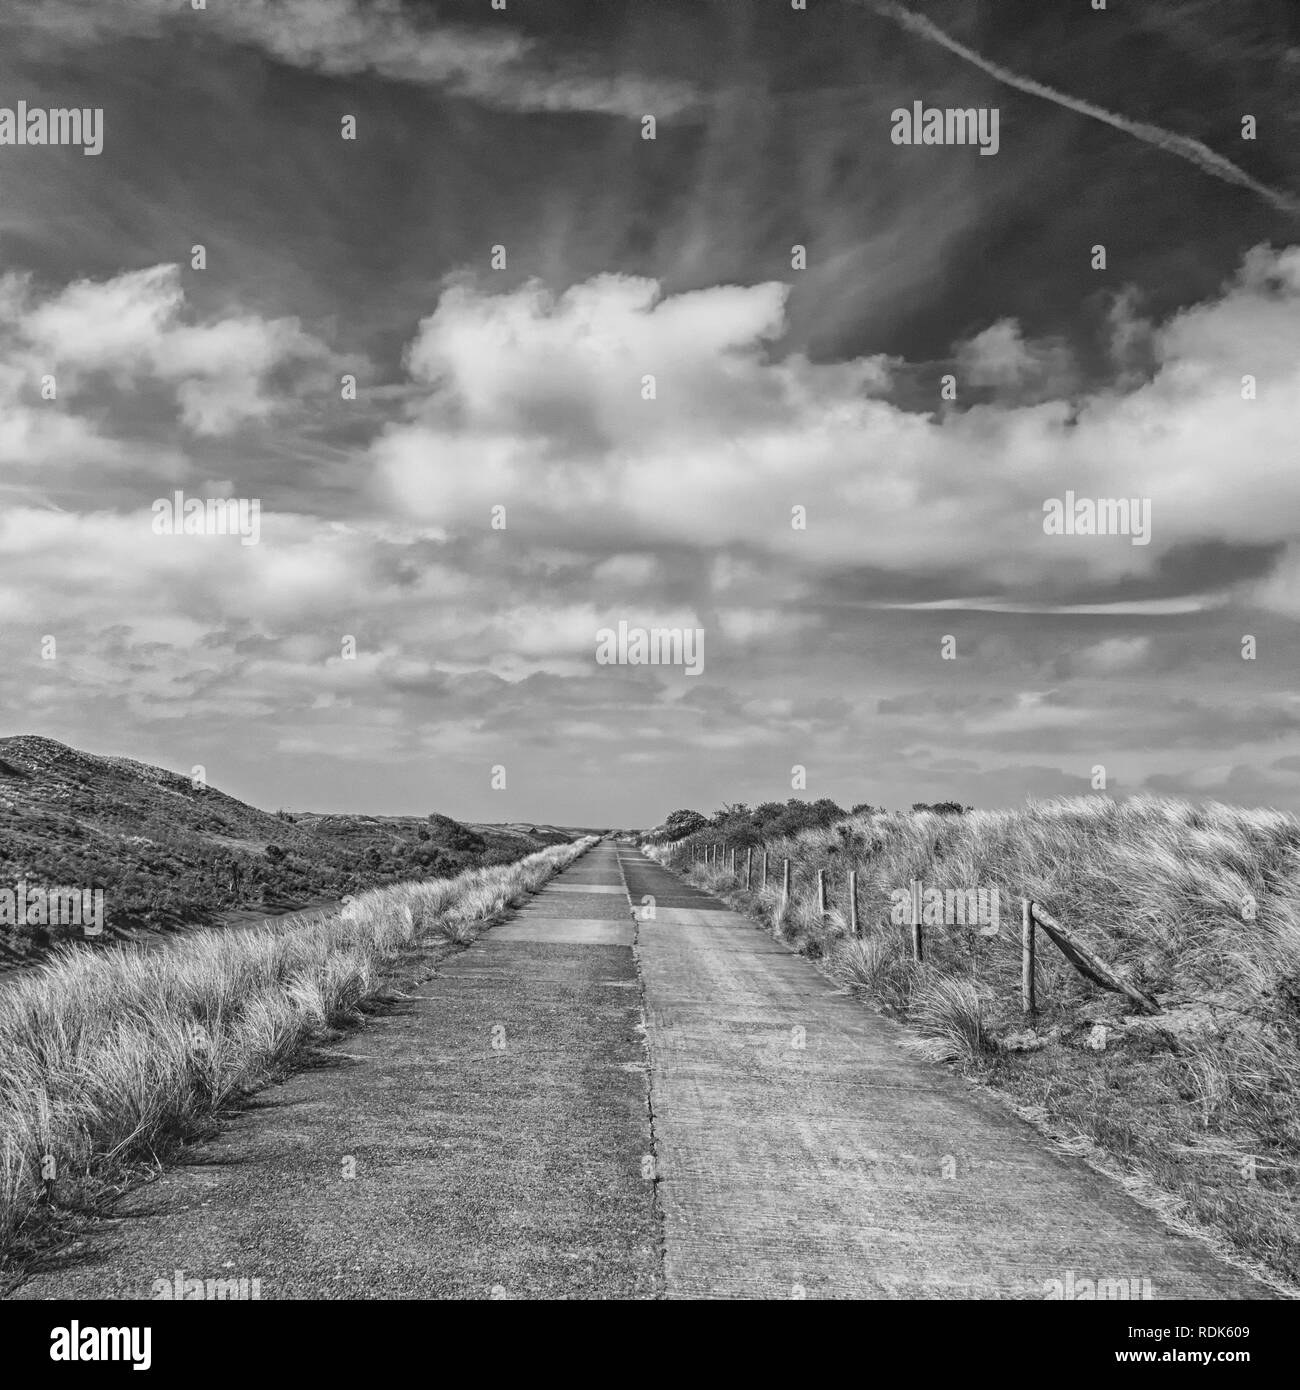 Road through the dunes of district Waterleidingduinen near to the cities Zandvoort and Amsterdam in the Netherlands, monochrome - Stock Image